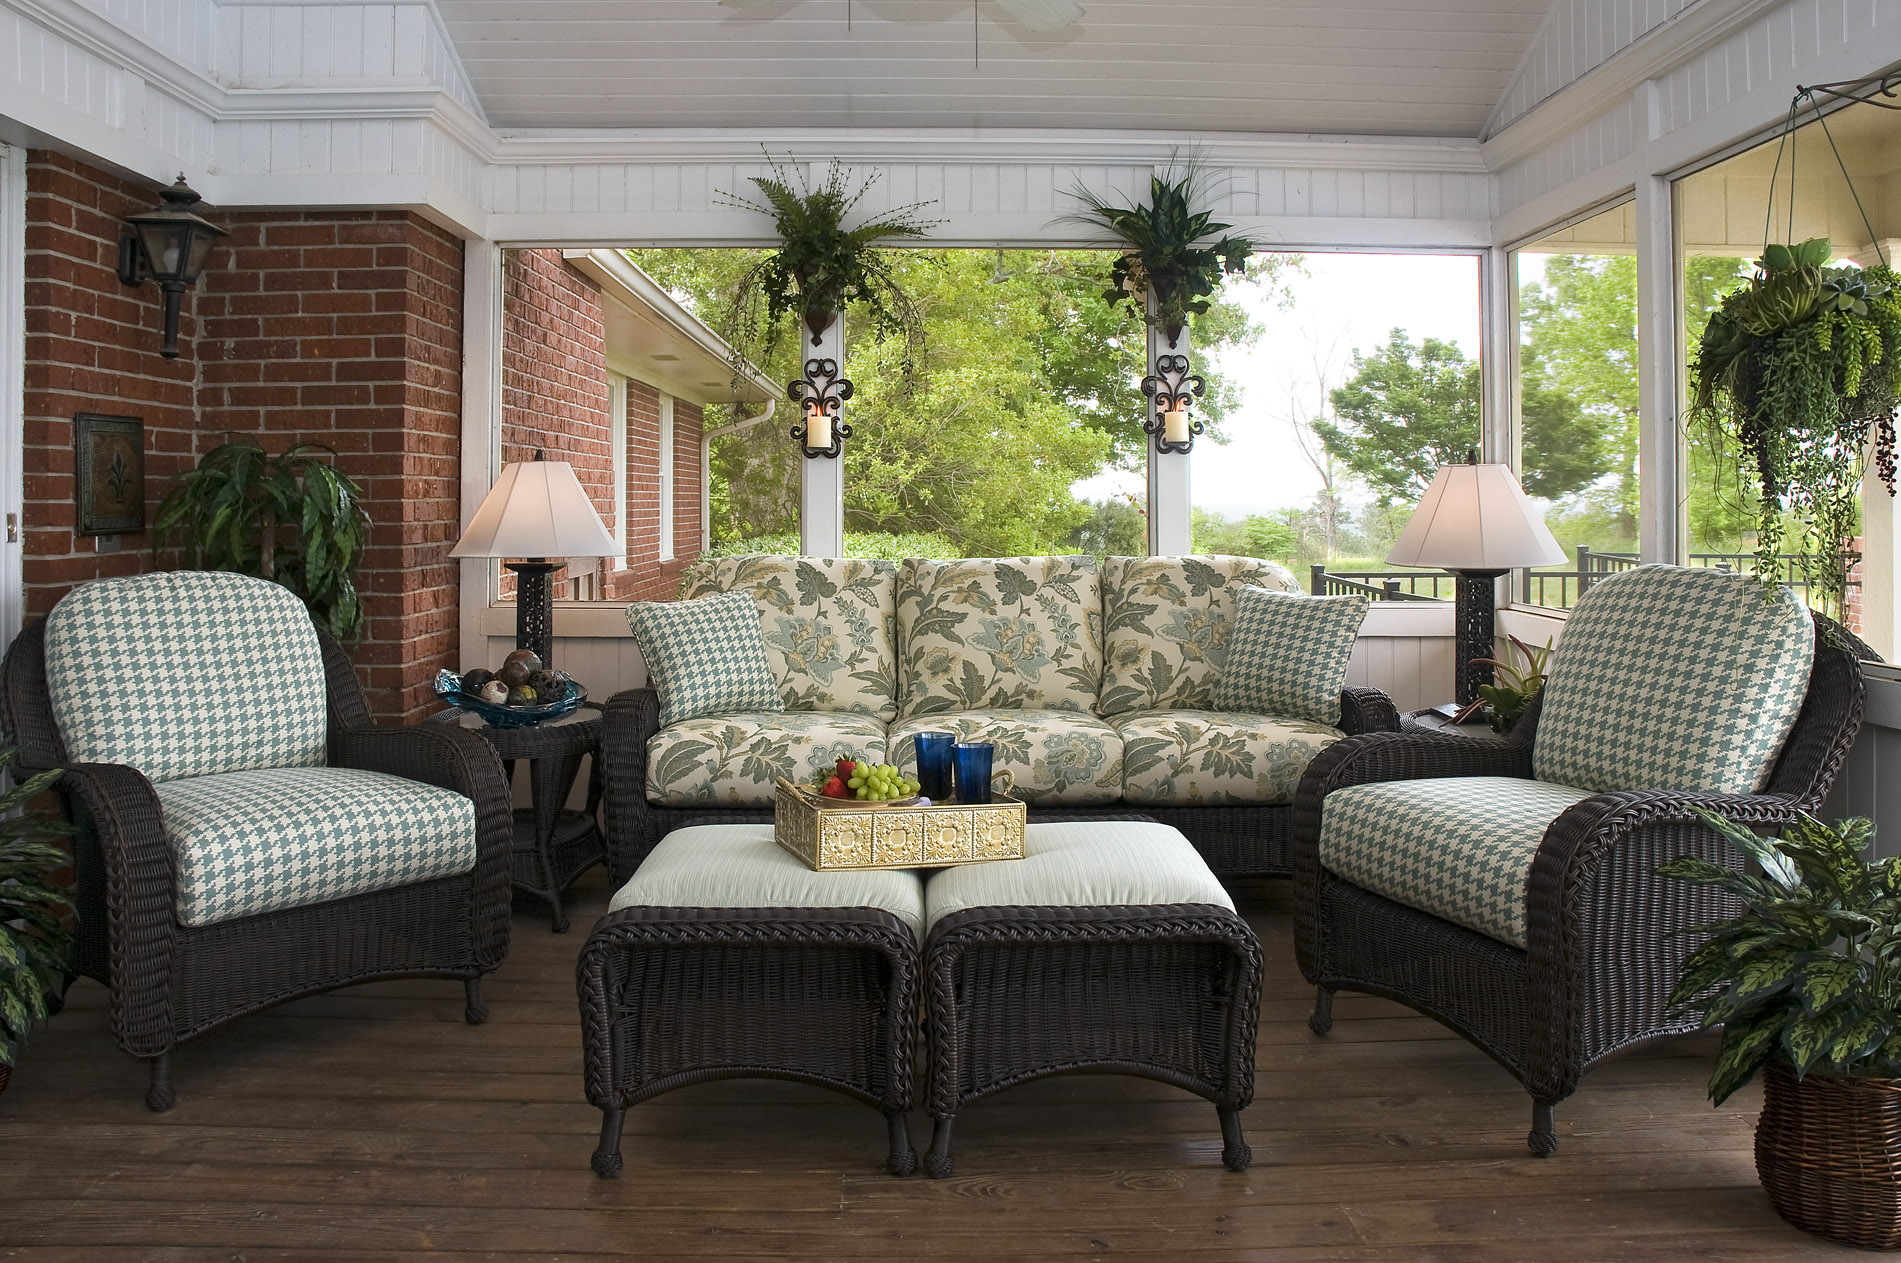 Outdoor Decorating at its finest | Catherine Pulcine - CPI ... on Living Spaces Outdoor Sectional id=37198